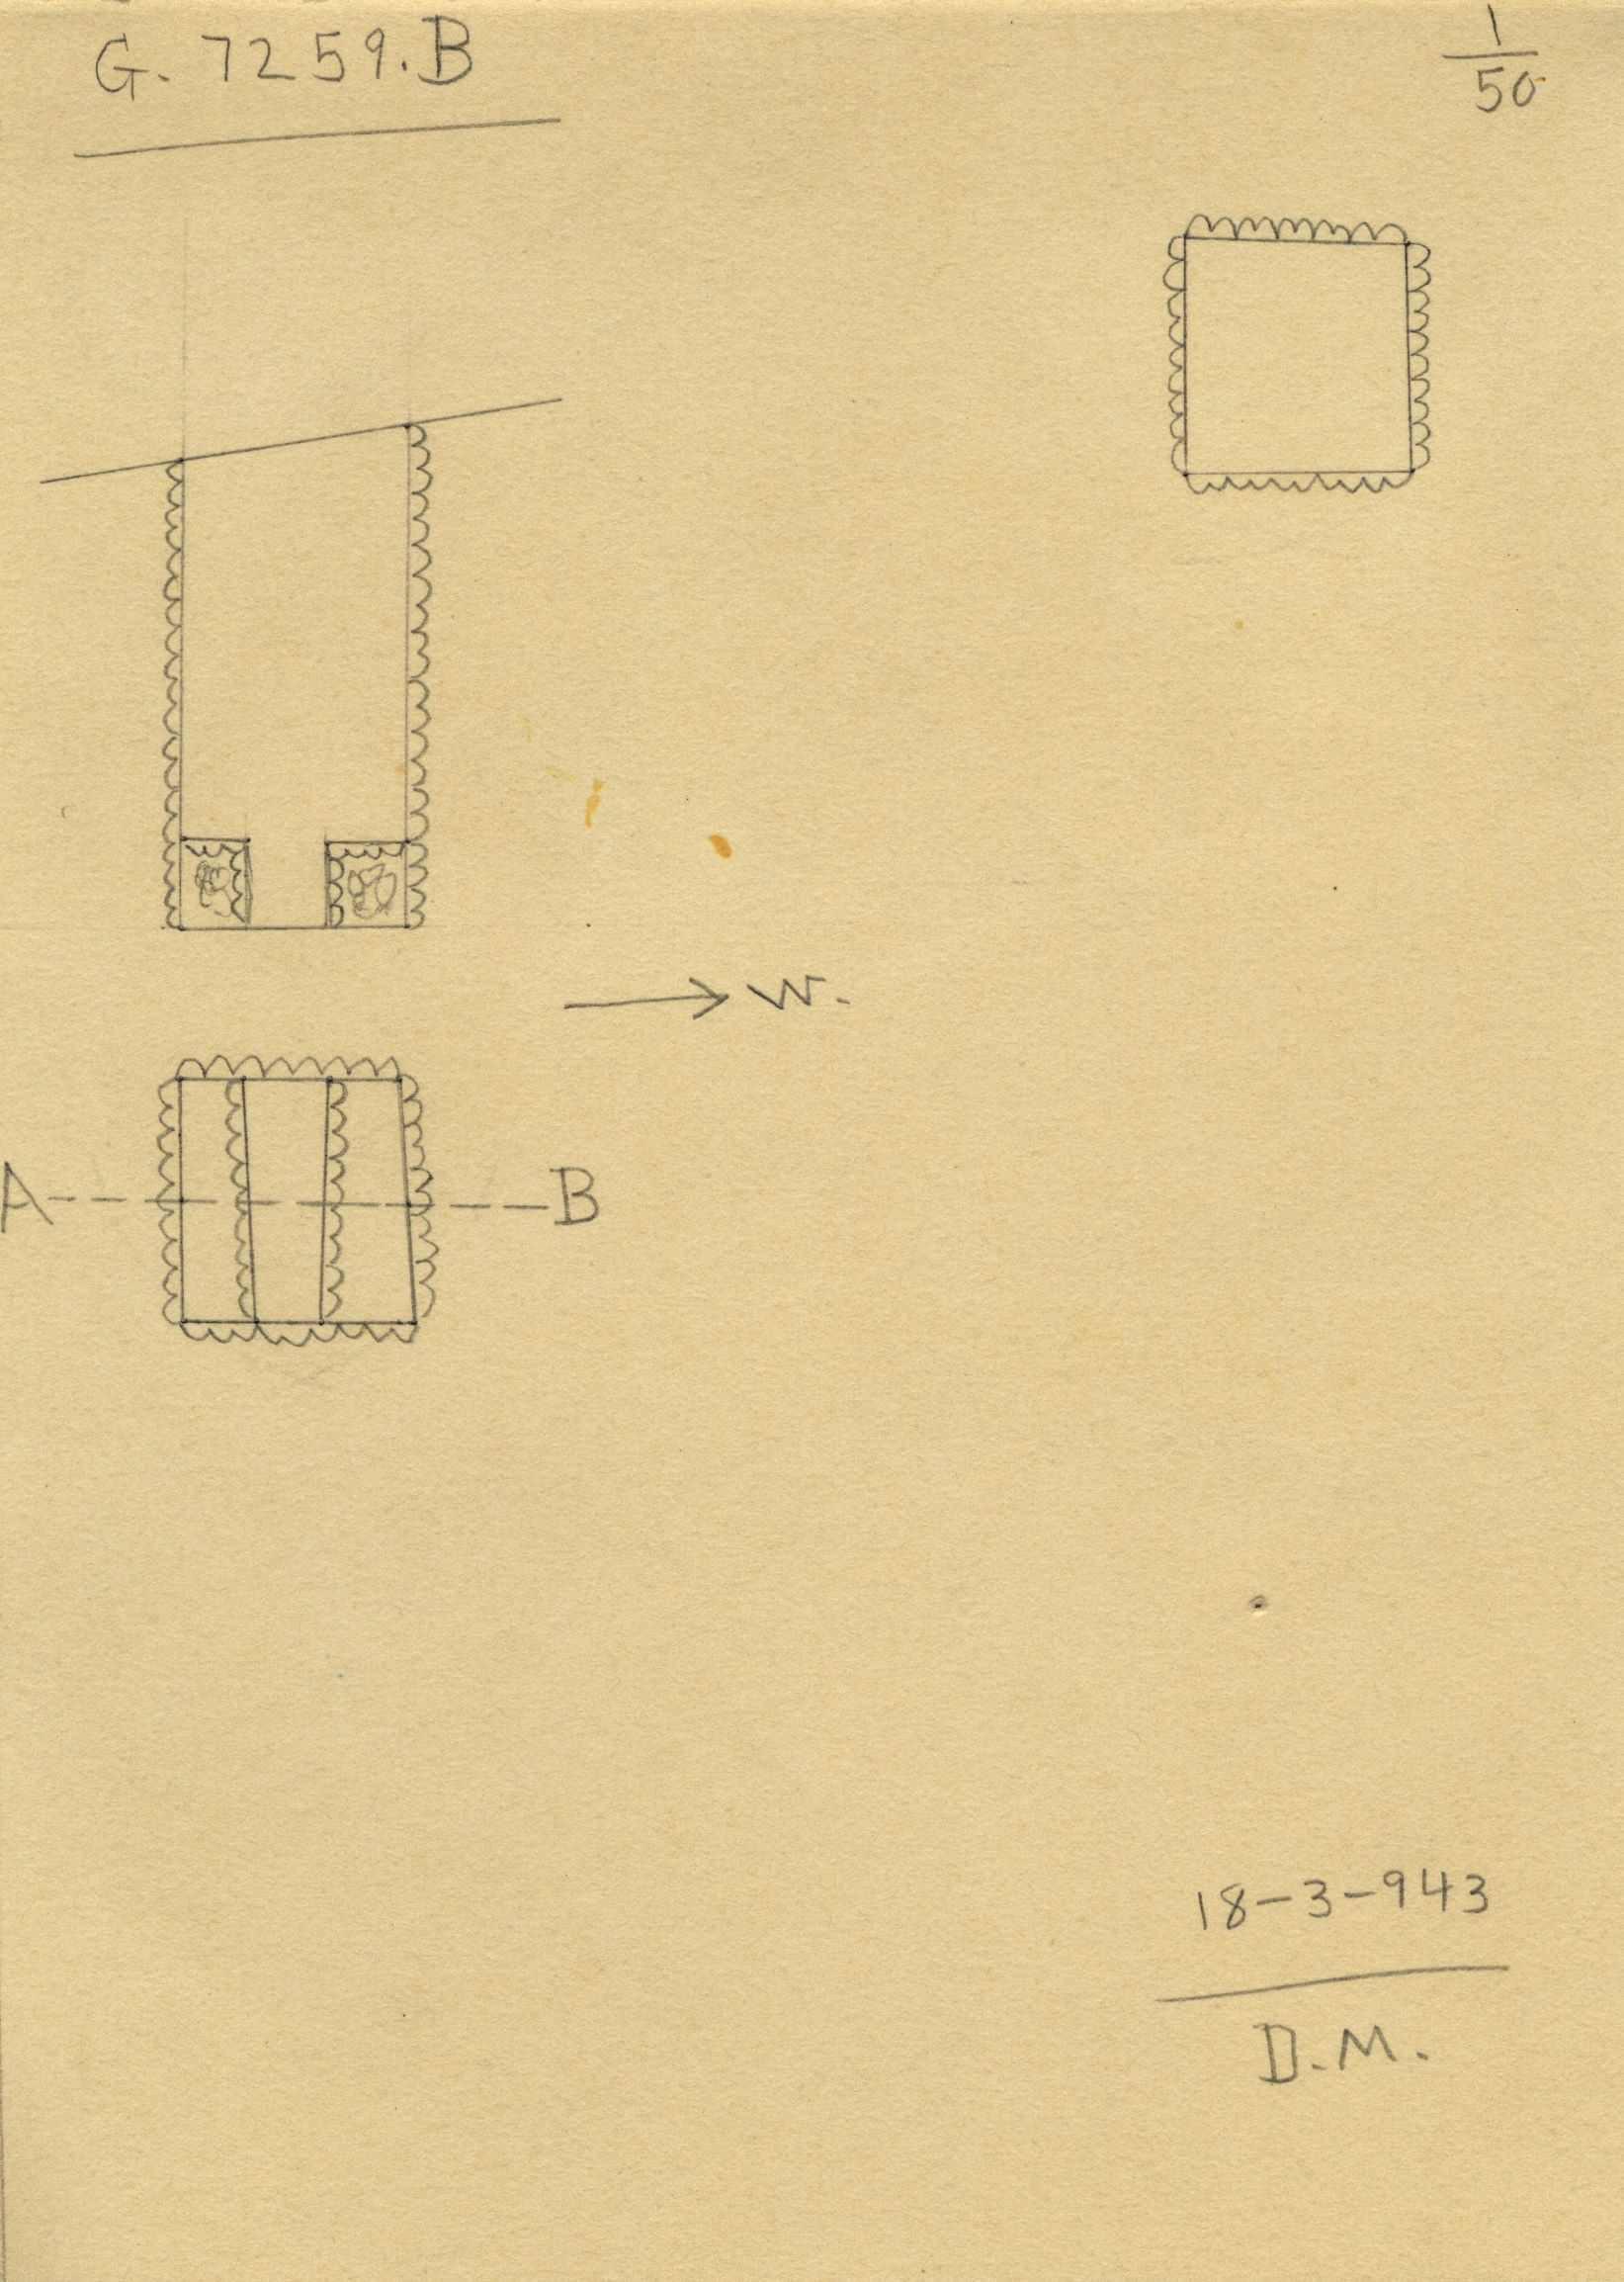 Maps and plans: G 7259, Shaft B